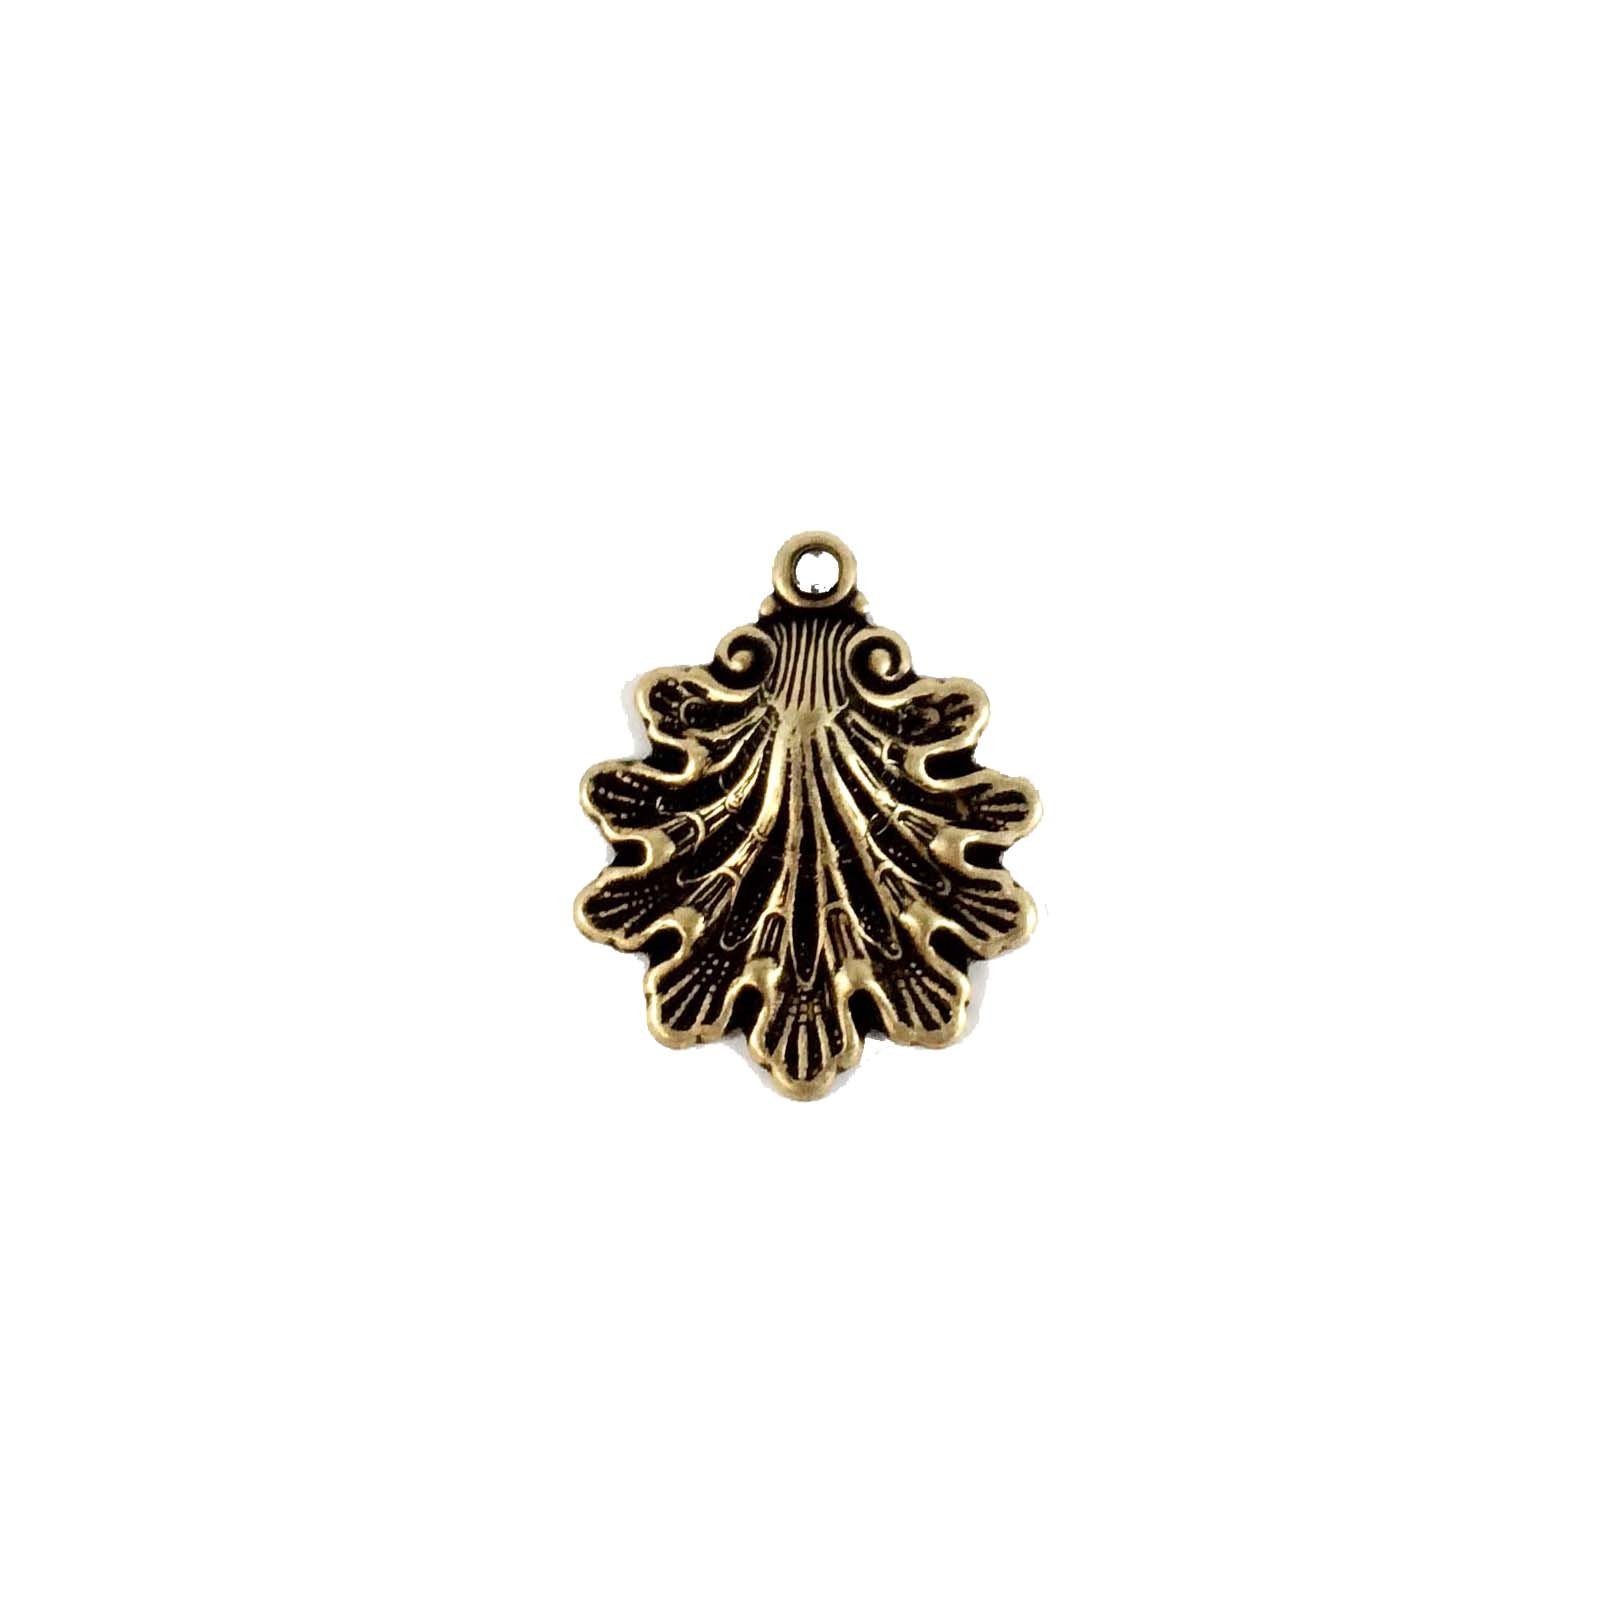 brass shell, brass charm, brass ox, 08391, brass ox, jewelry making, 15x14mm, B'sue Boutiques, nickel free jewelry supplies, vintage jewellery supplies, US made jewelry supplies, antique brass,